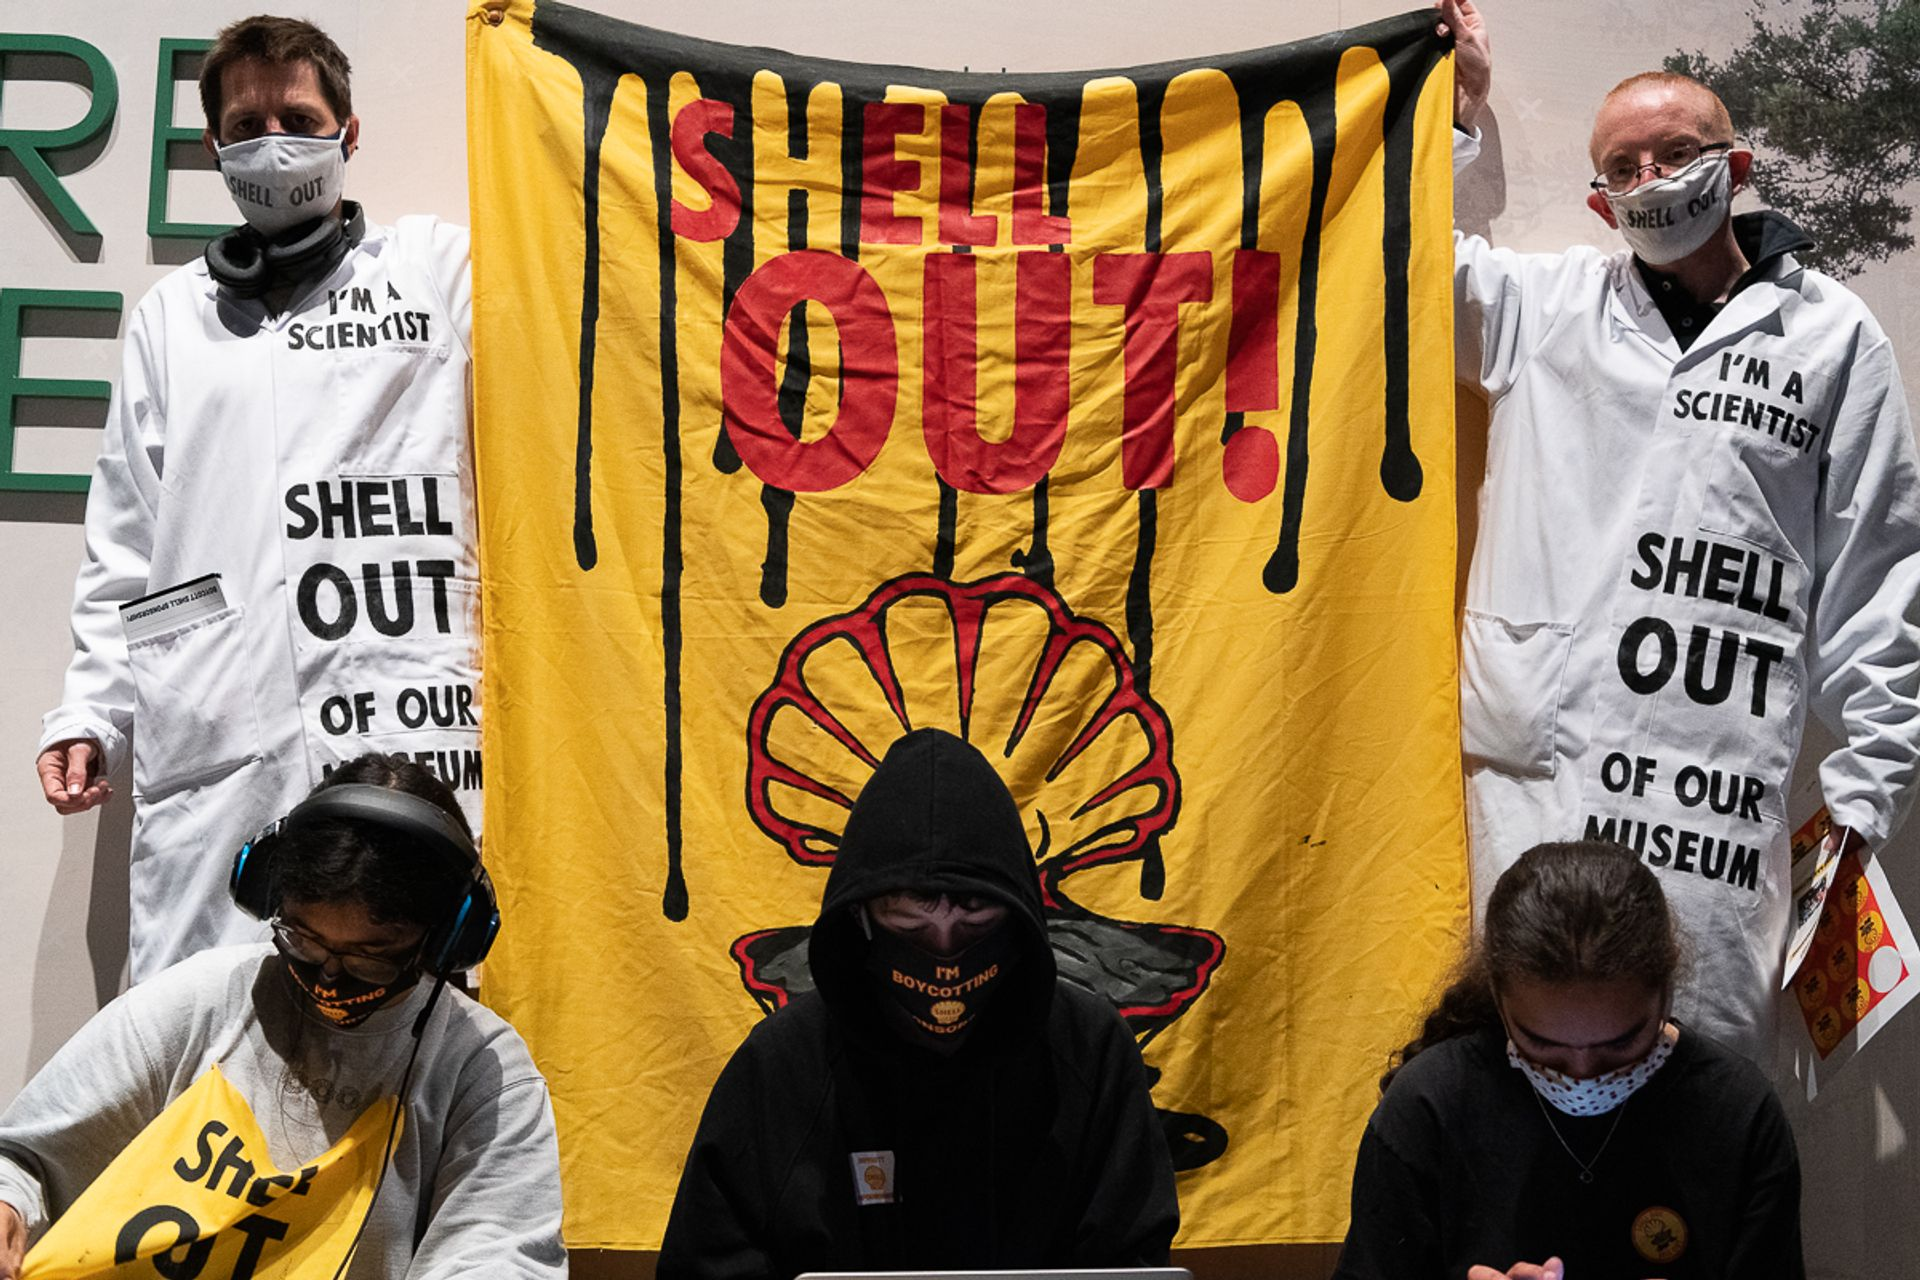 A group of youth climate activists staged a protest against the oil company Shell at the Science Museum in South Kensington, London, last weekend Photo: Ron Fassbender